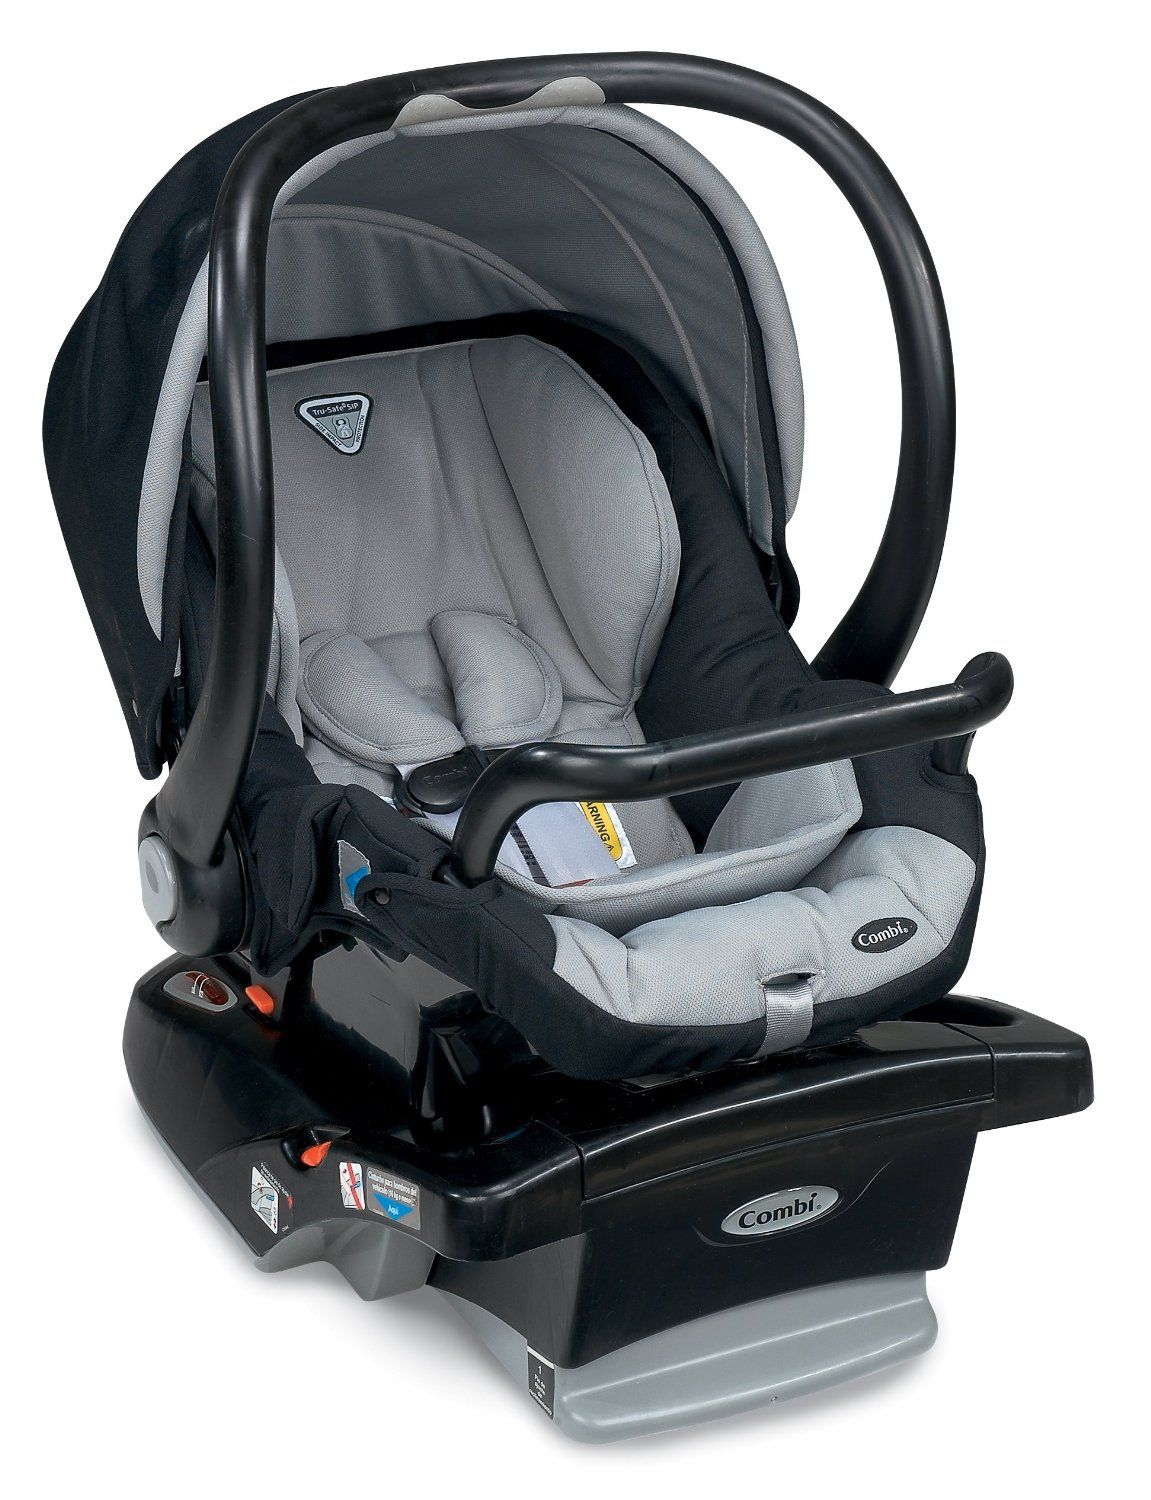 Top 10 Best Infant Car Seats in 2019 Reviews Baby car